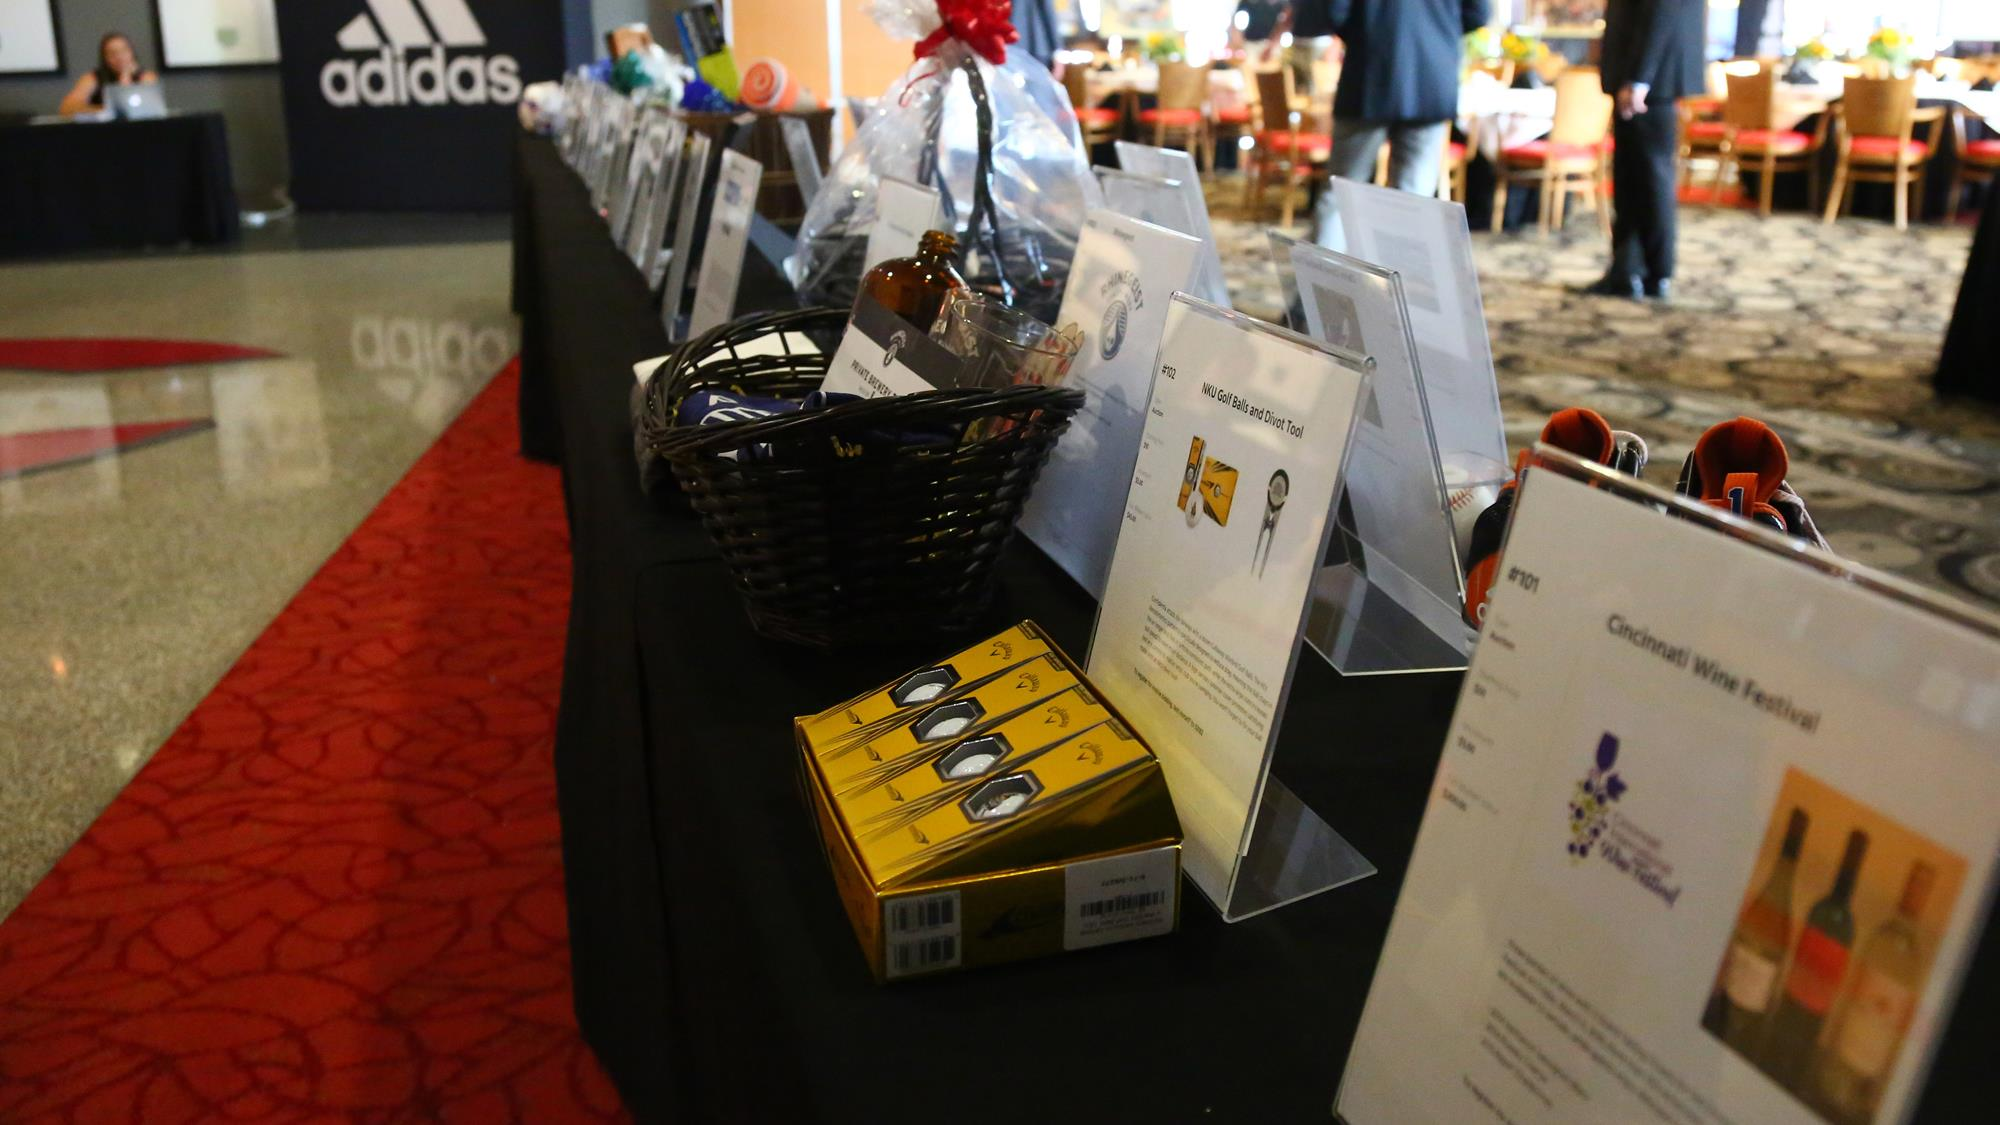 bidding on silent auction items for nkus a night with the norse gala is open